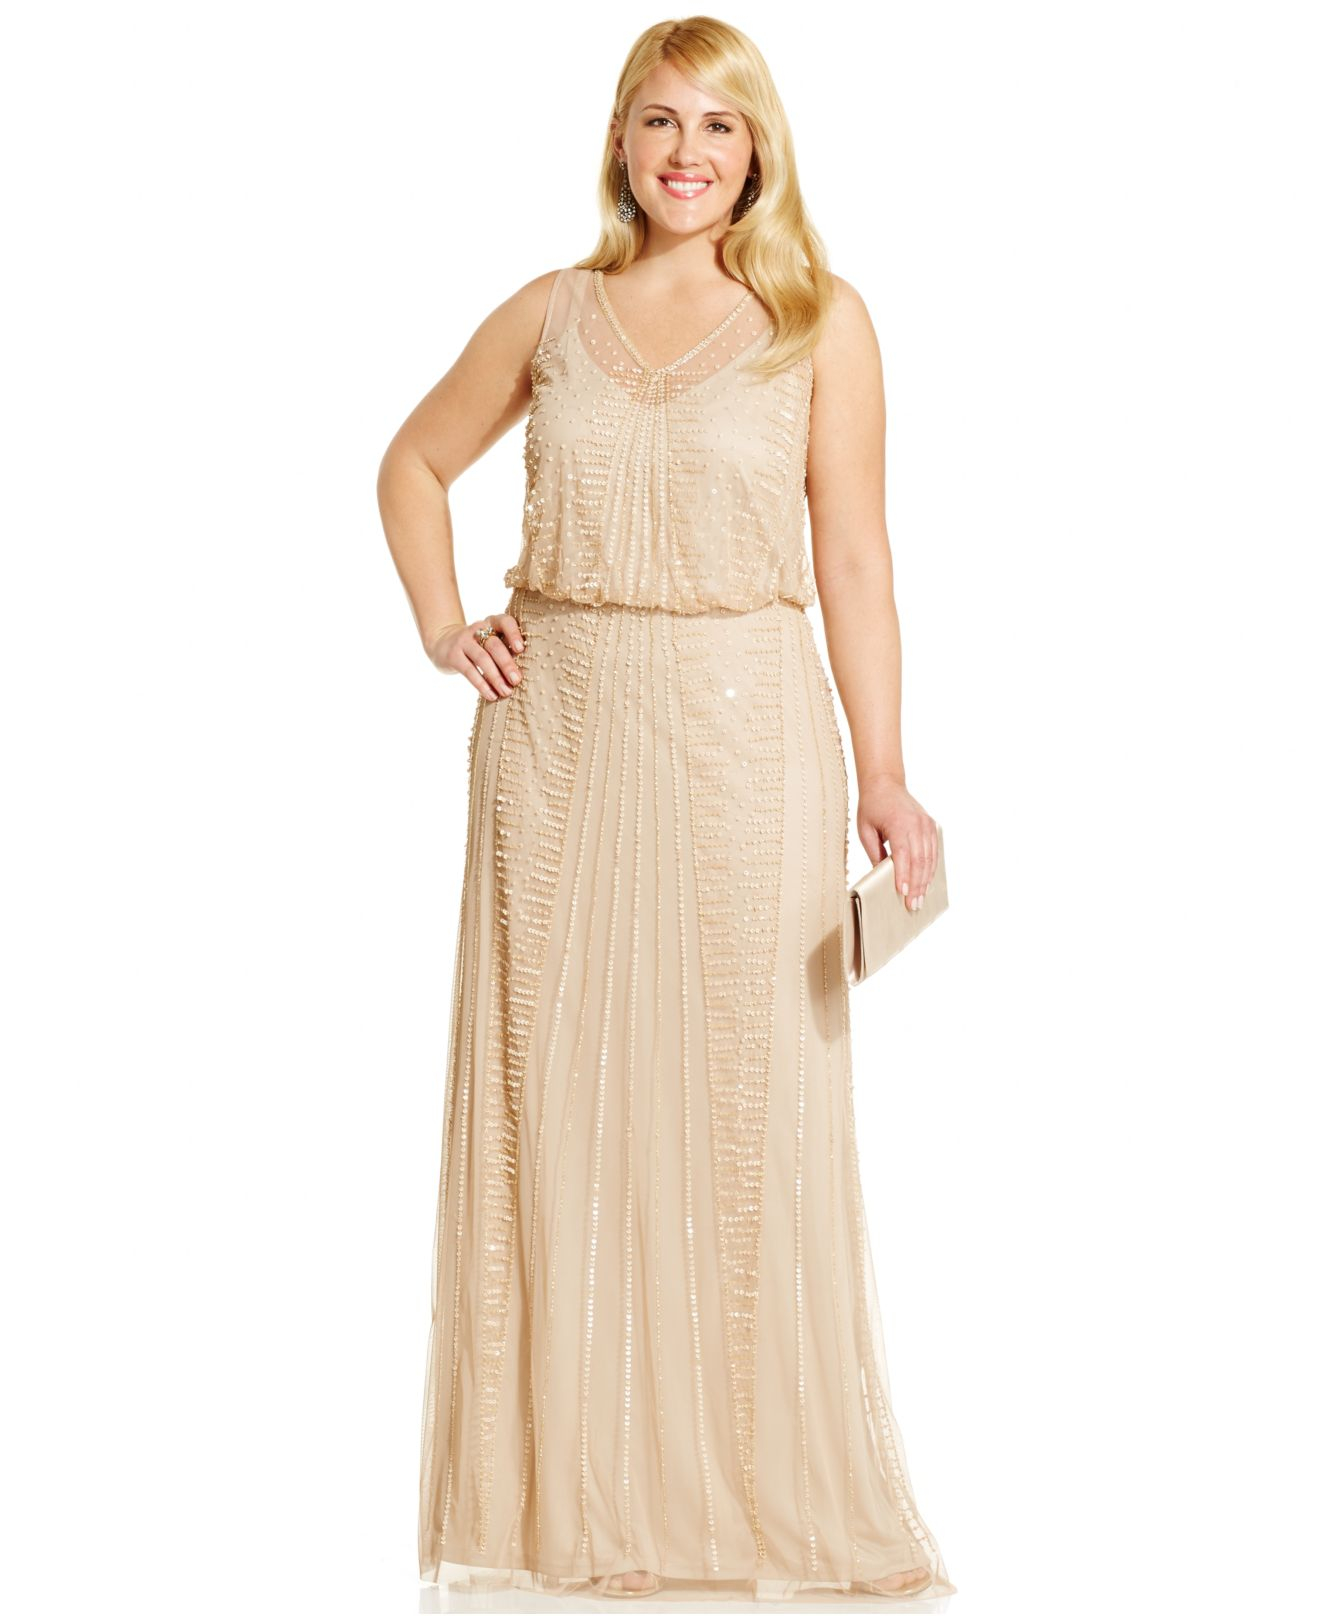 Lyst - Adrianna Papell Plus Size Embellished Gown in Metallic